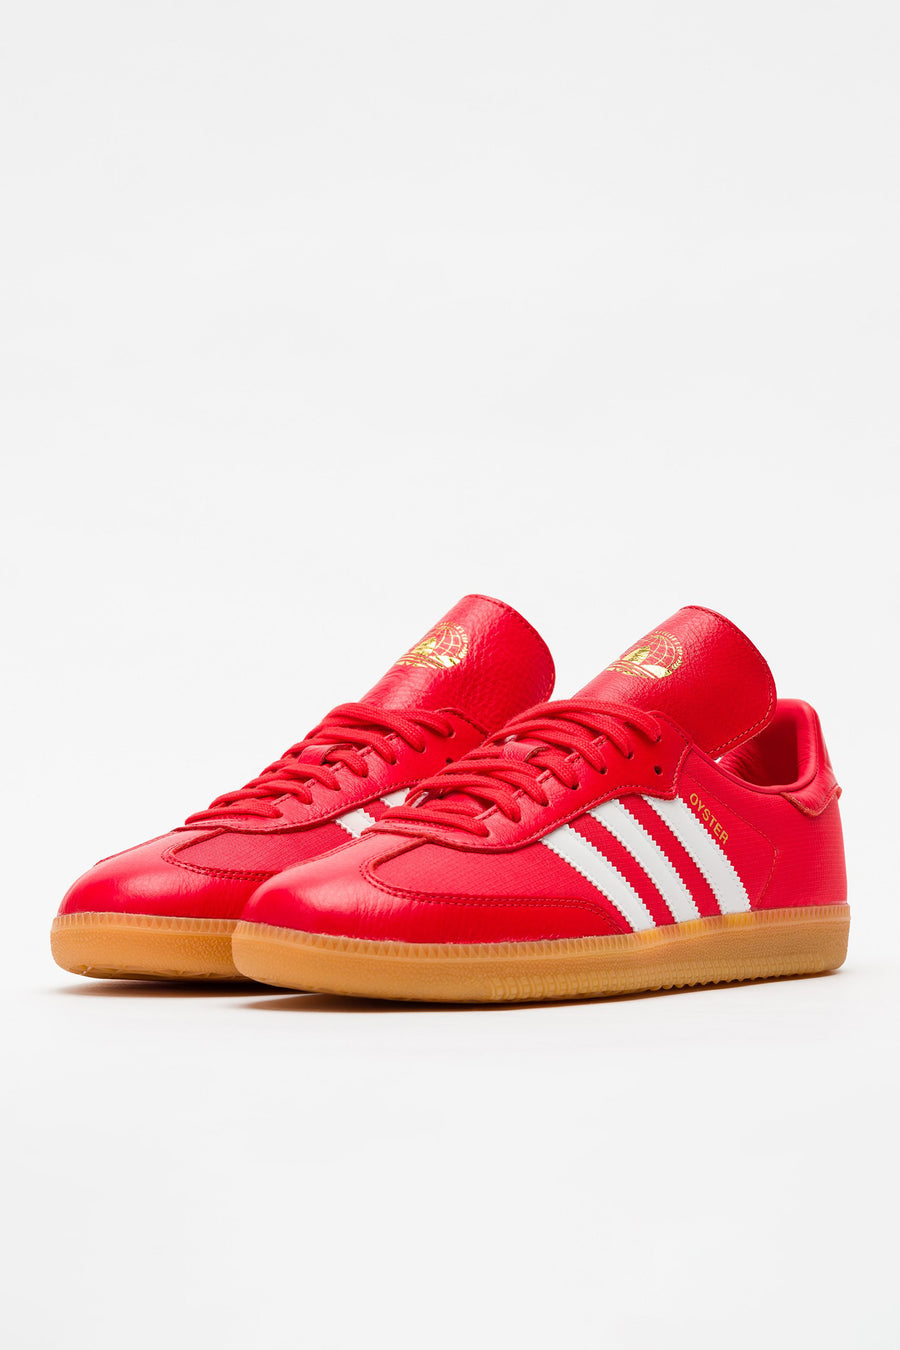 adidas Oyster Holdings Samba OG in Red - Notre